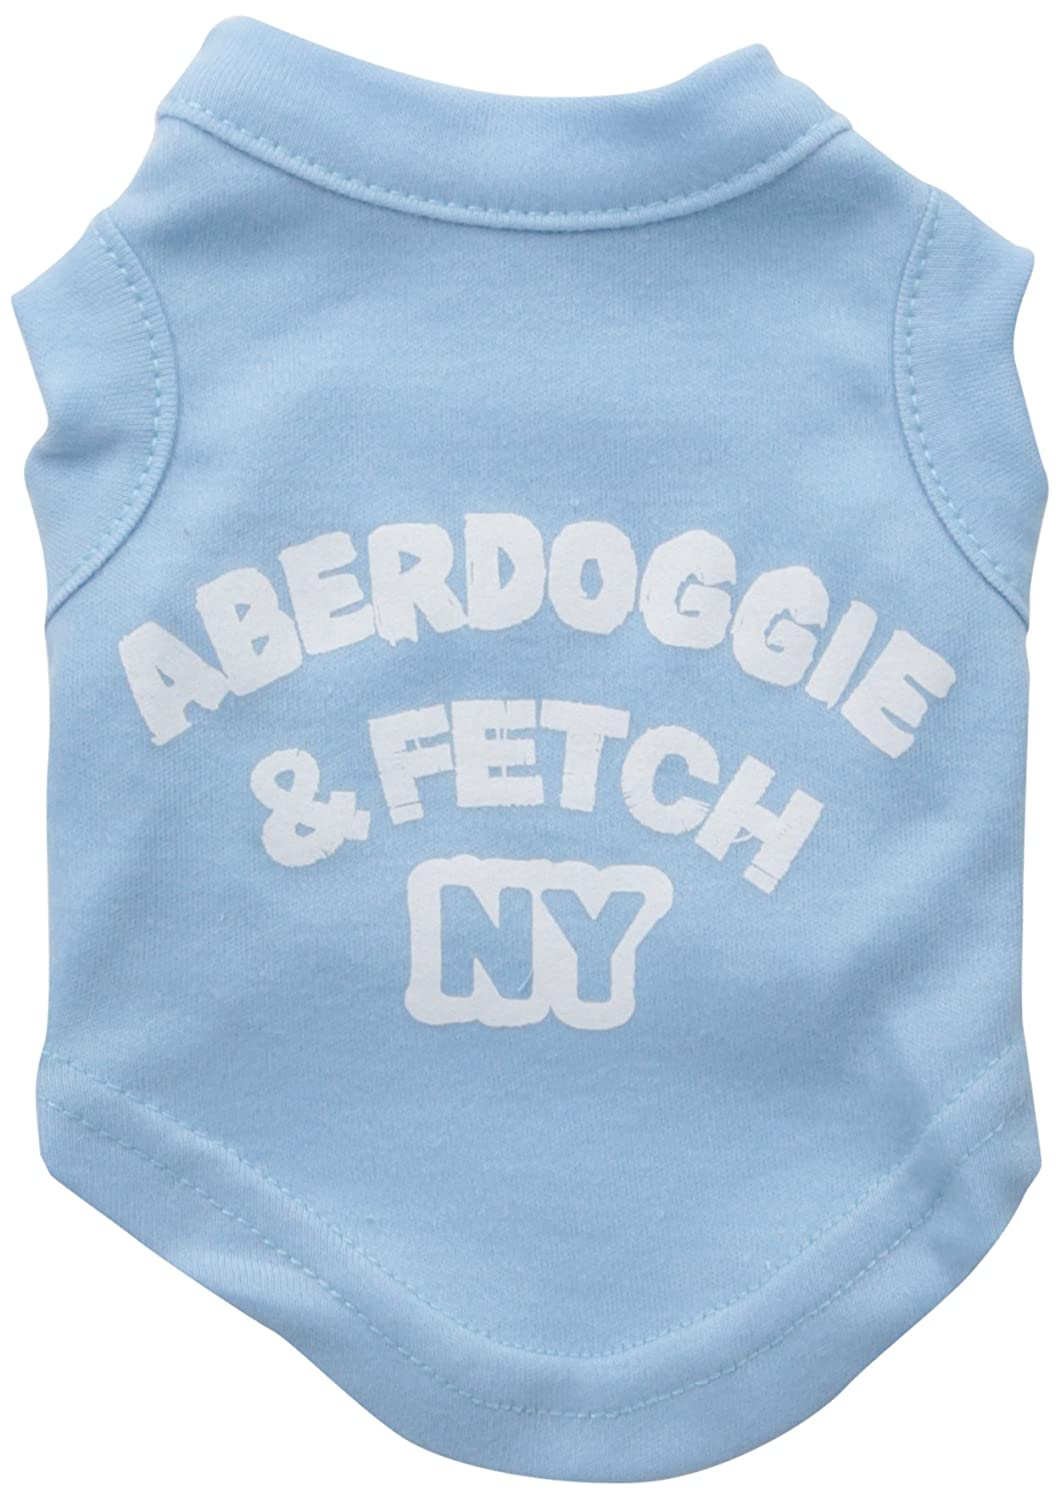 Baby bluee Mirage Pet Products 8-Inch Aberdoggie NY Screenprint Shirts, X-Small, Baby bluee